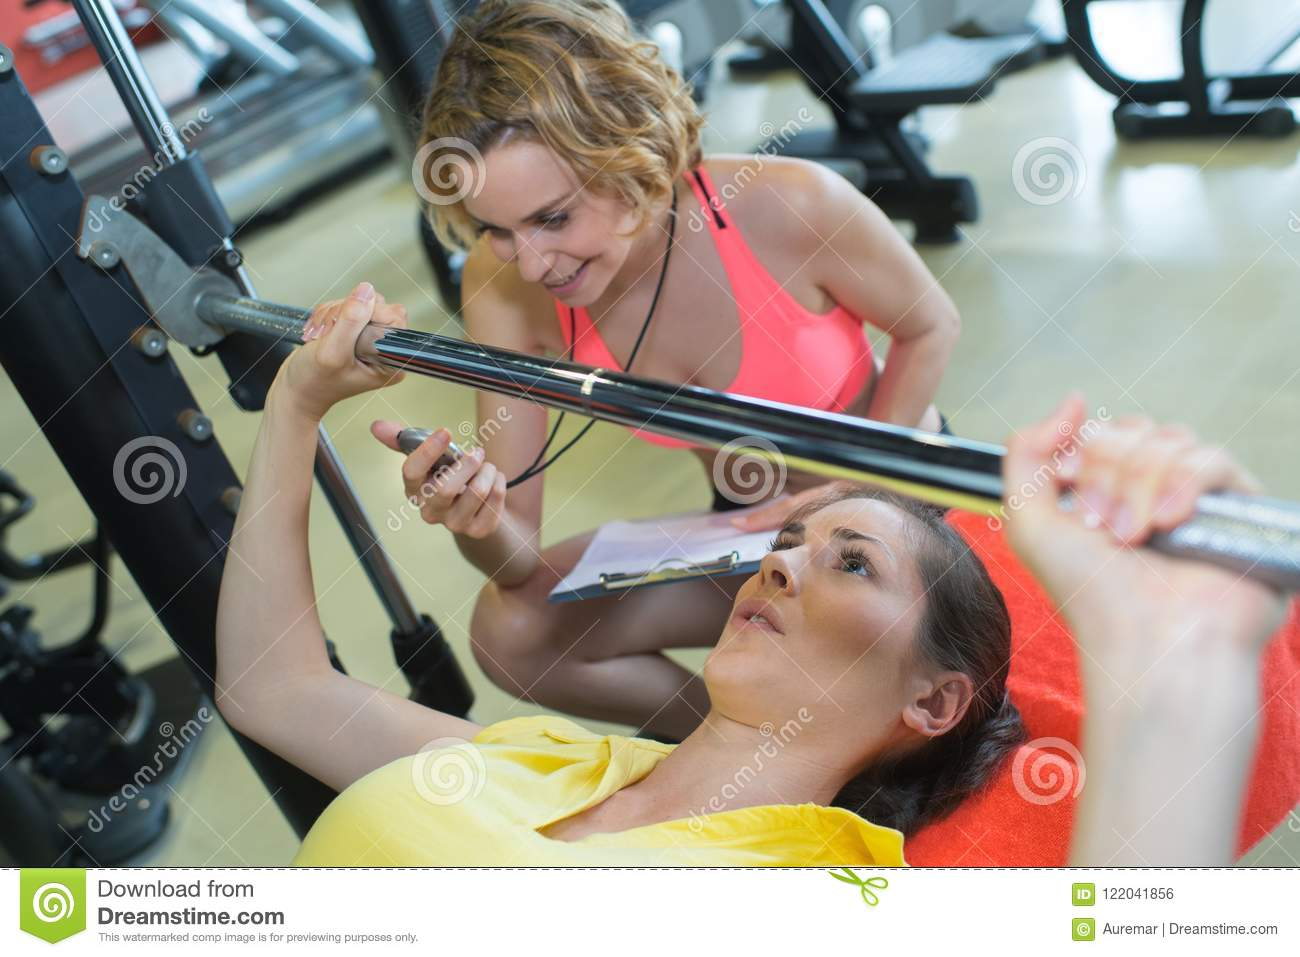 Personal trainer helping woman for correct bench press-training